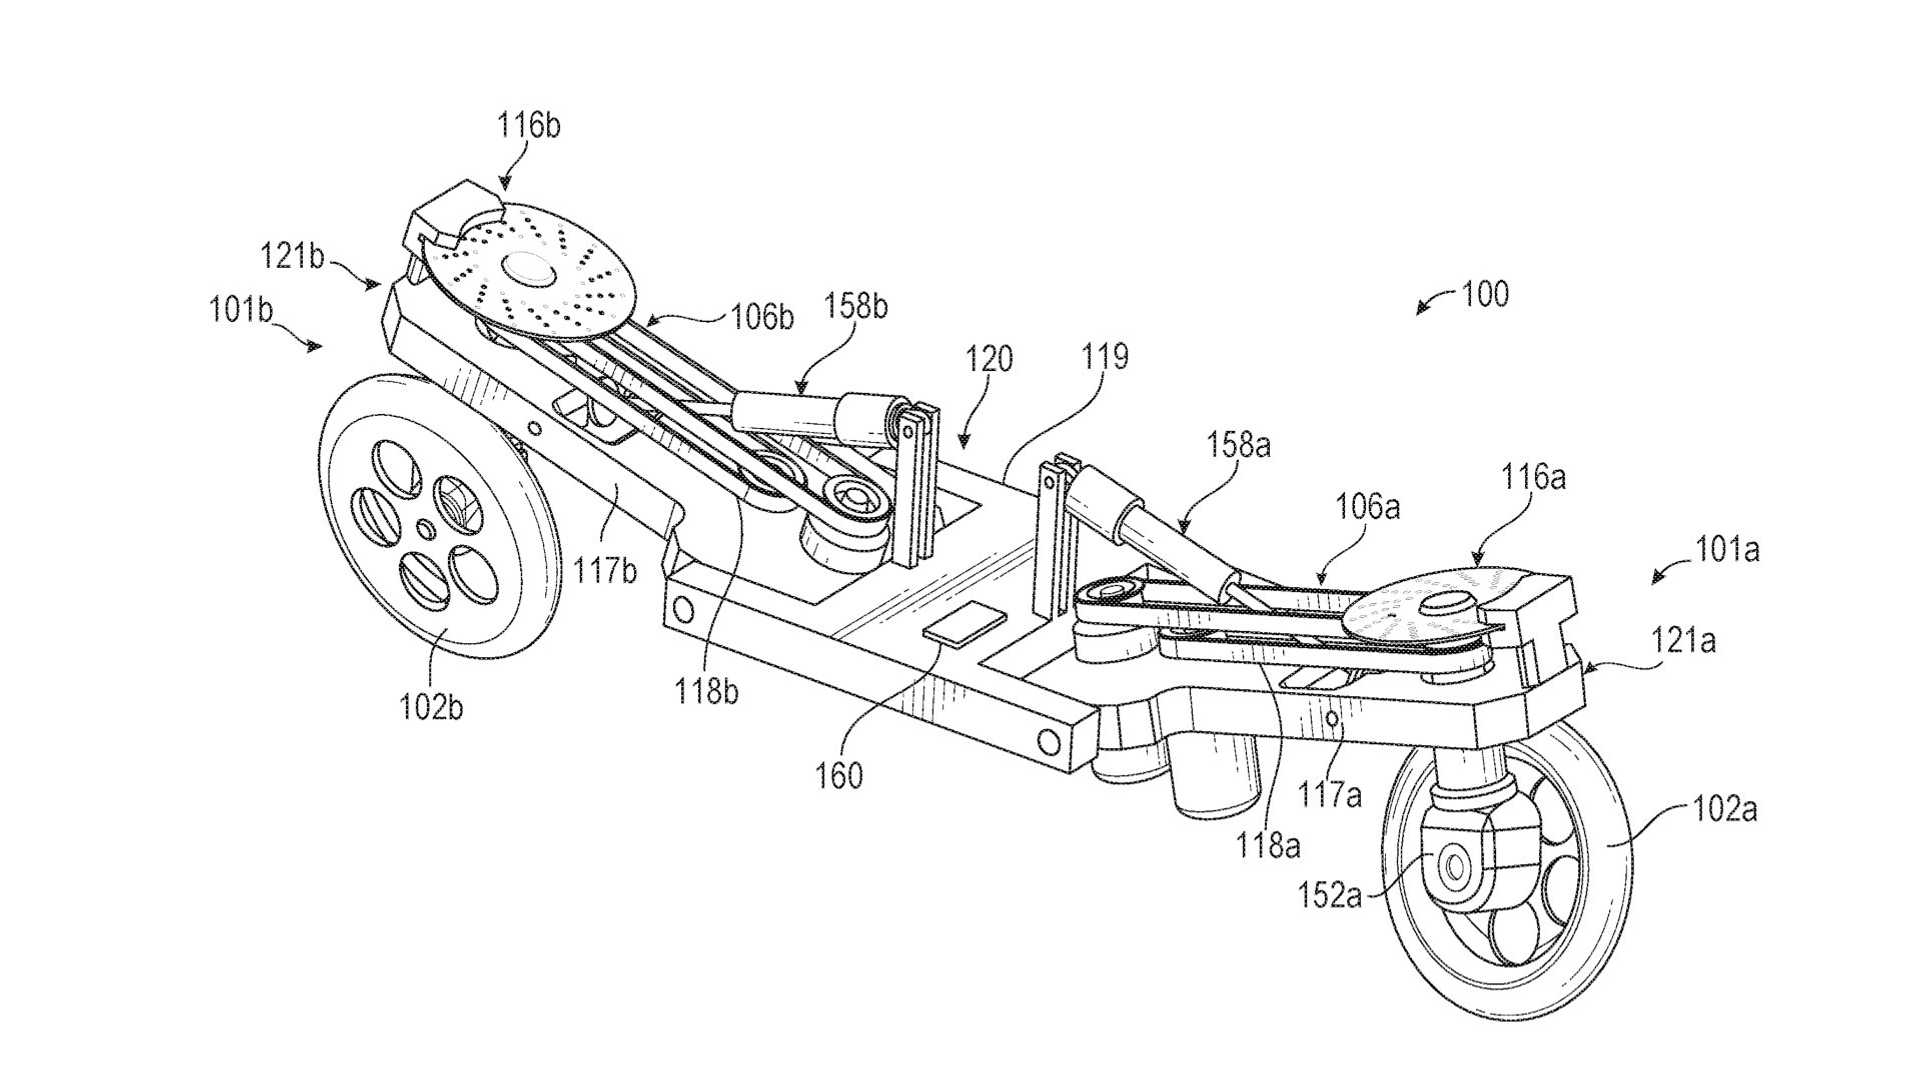 Facebook Files Patent for Self-balancing Electric Motorcycle